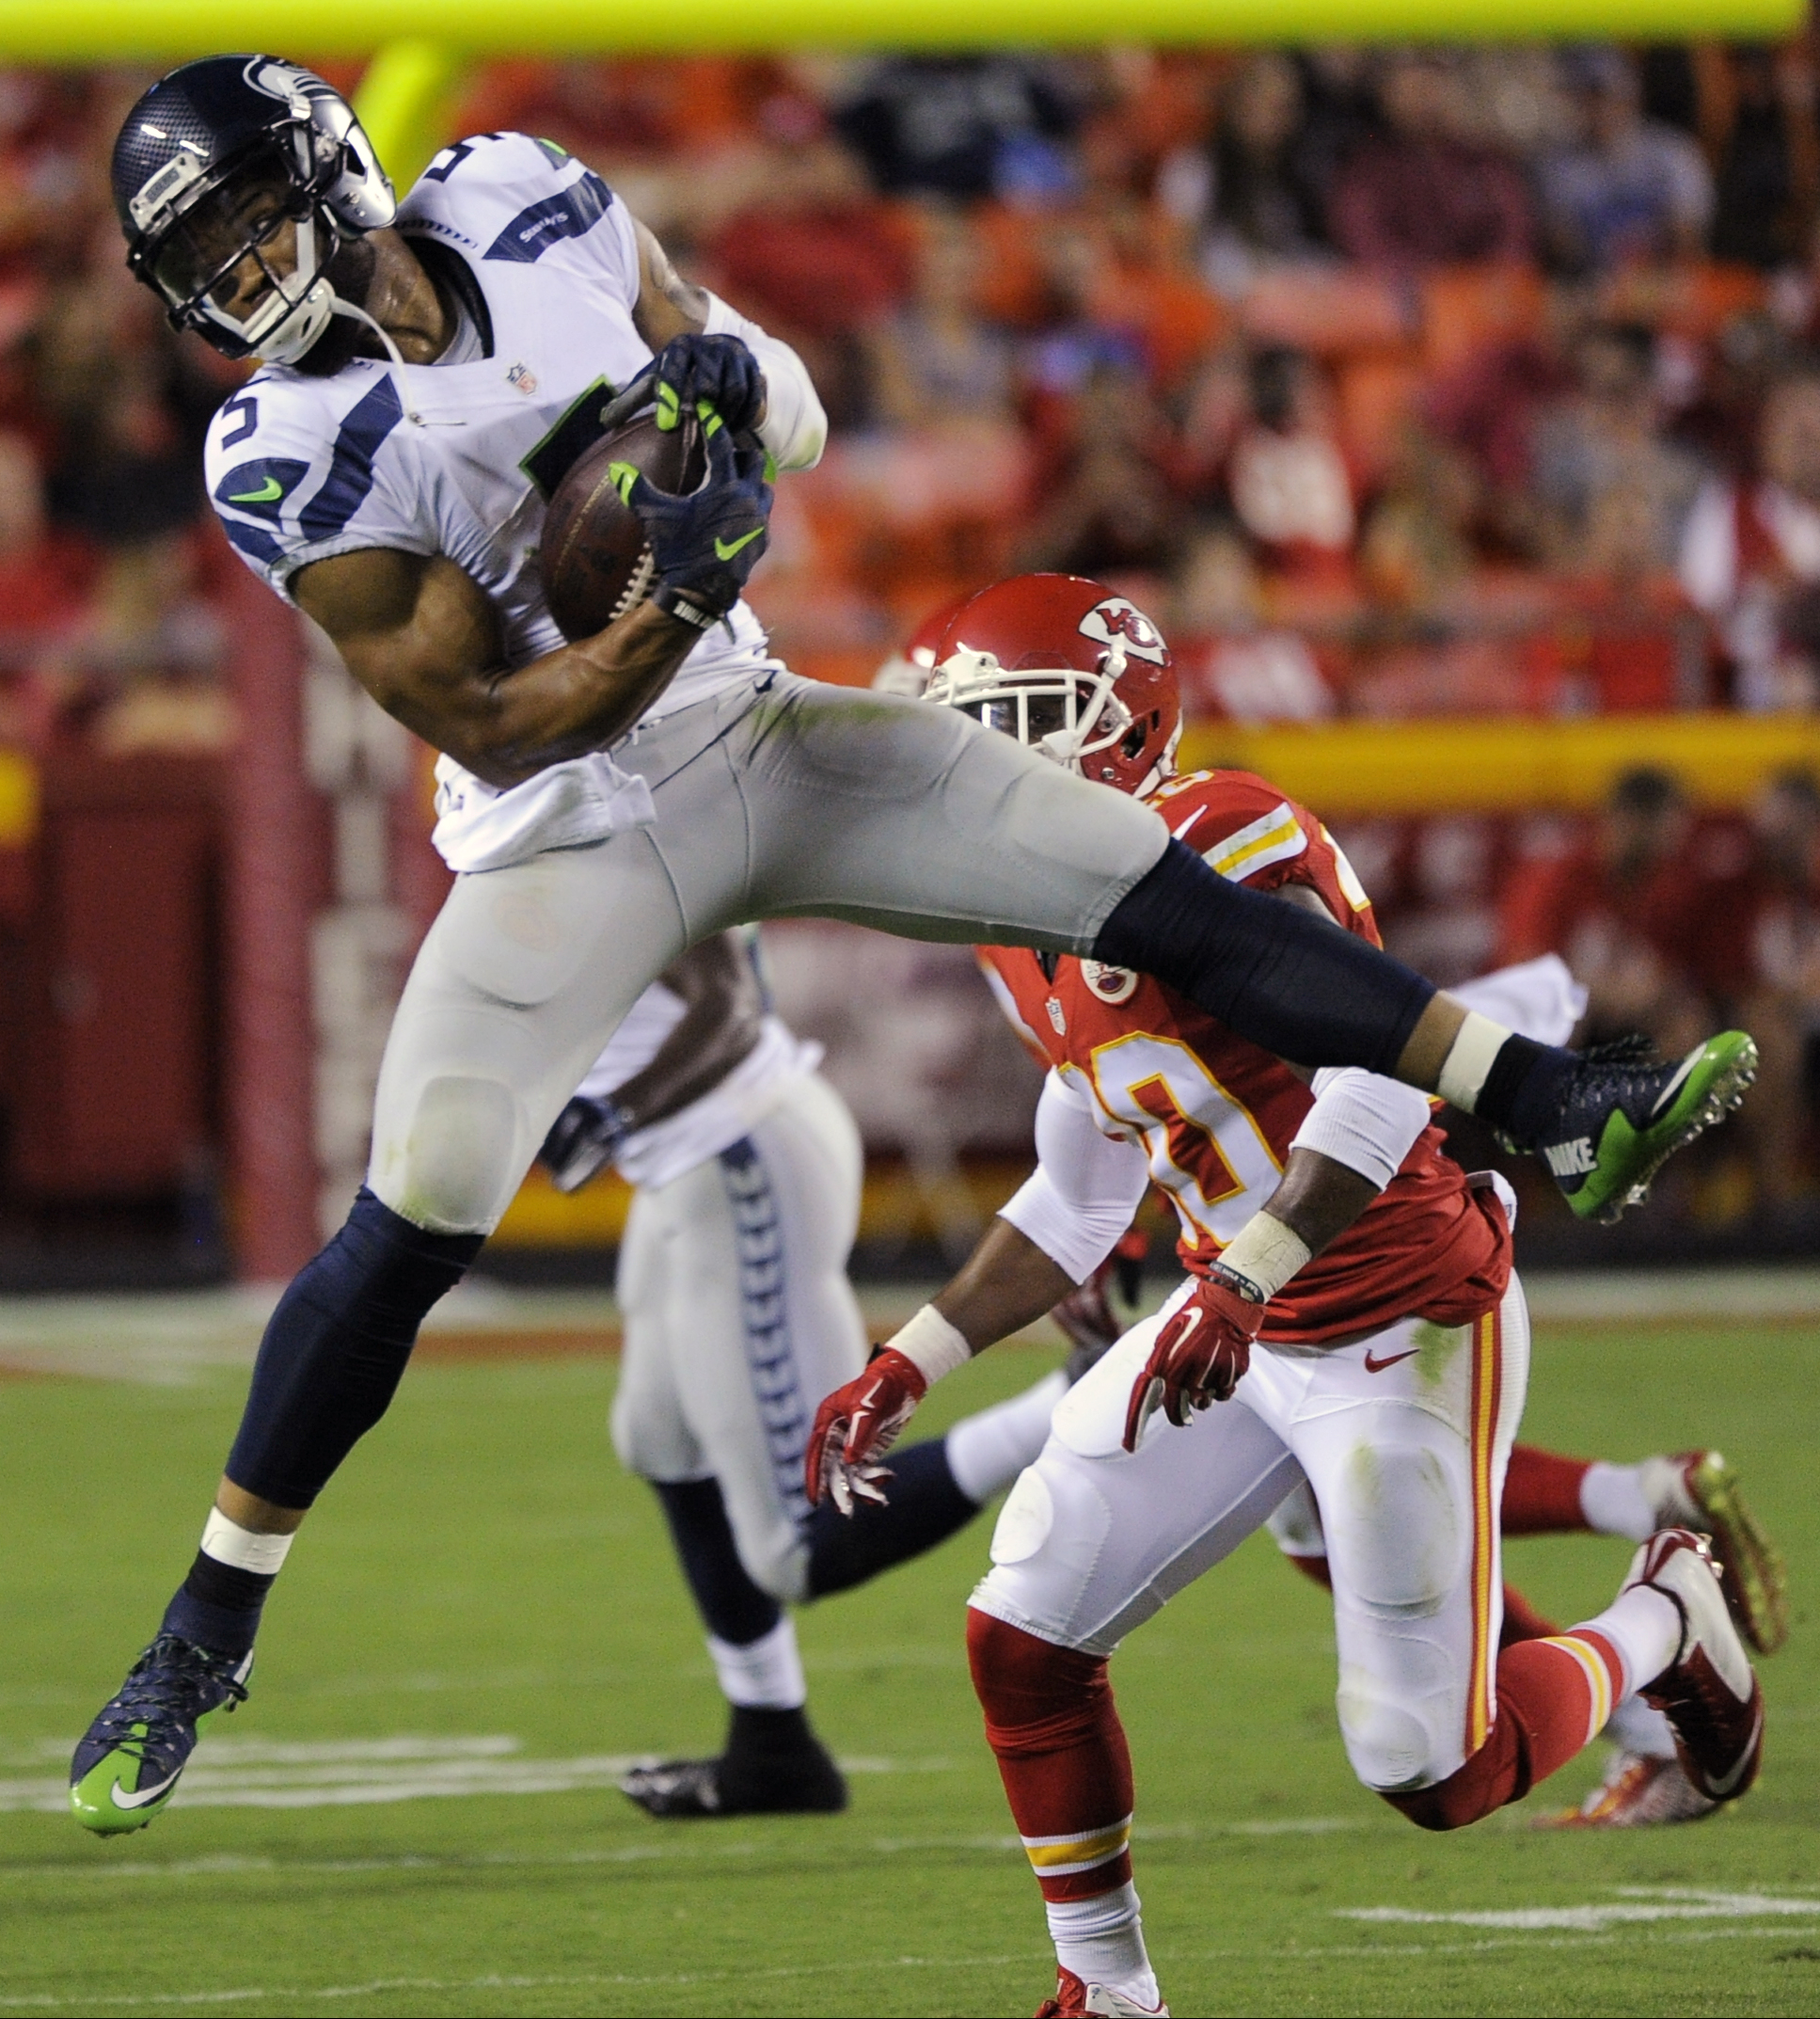 FILE - In this Aug. 21, 2015, file photo, Seattle Seahawks quarterback B.J. Daniels (5) makes a catch in front of Kansas City Chiefs cornerback Steven Nelson (20) during the second half of a preseason NFL football game at Arrowhead Stadium in Kansas City,